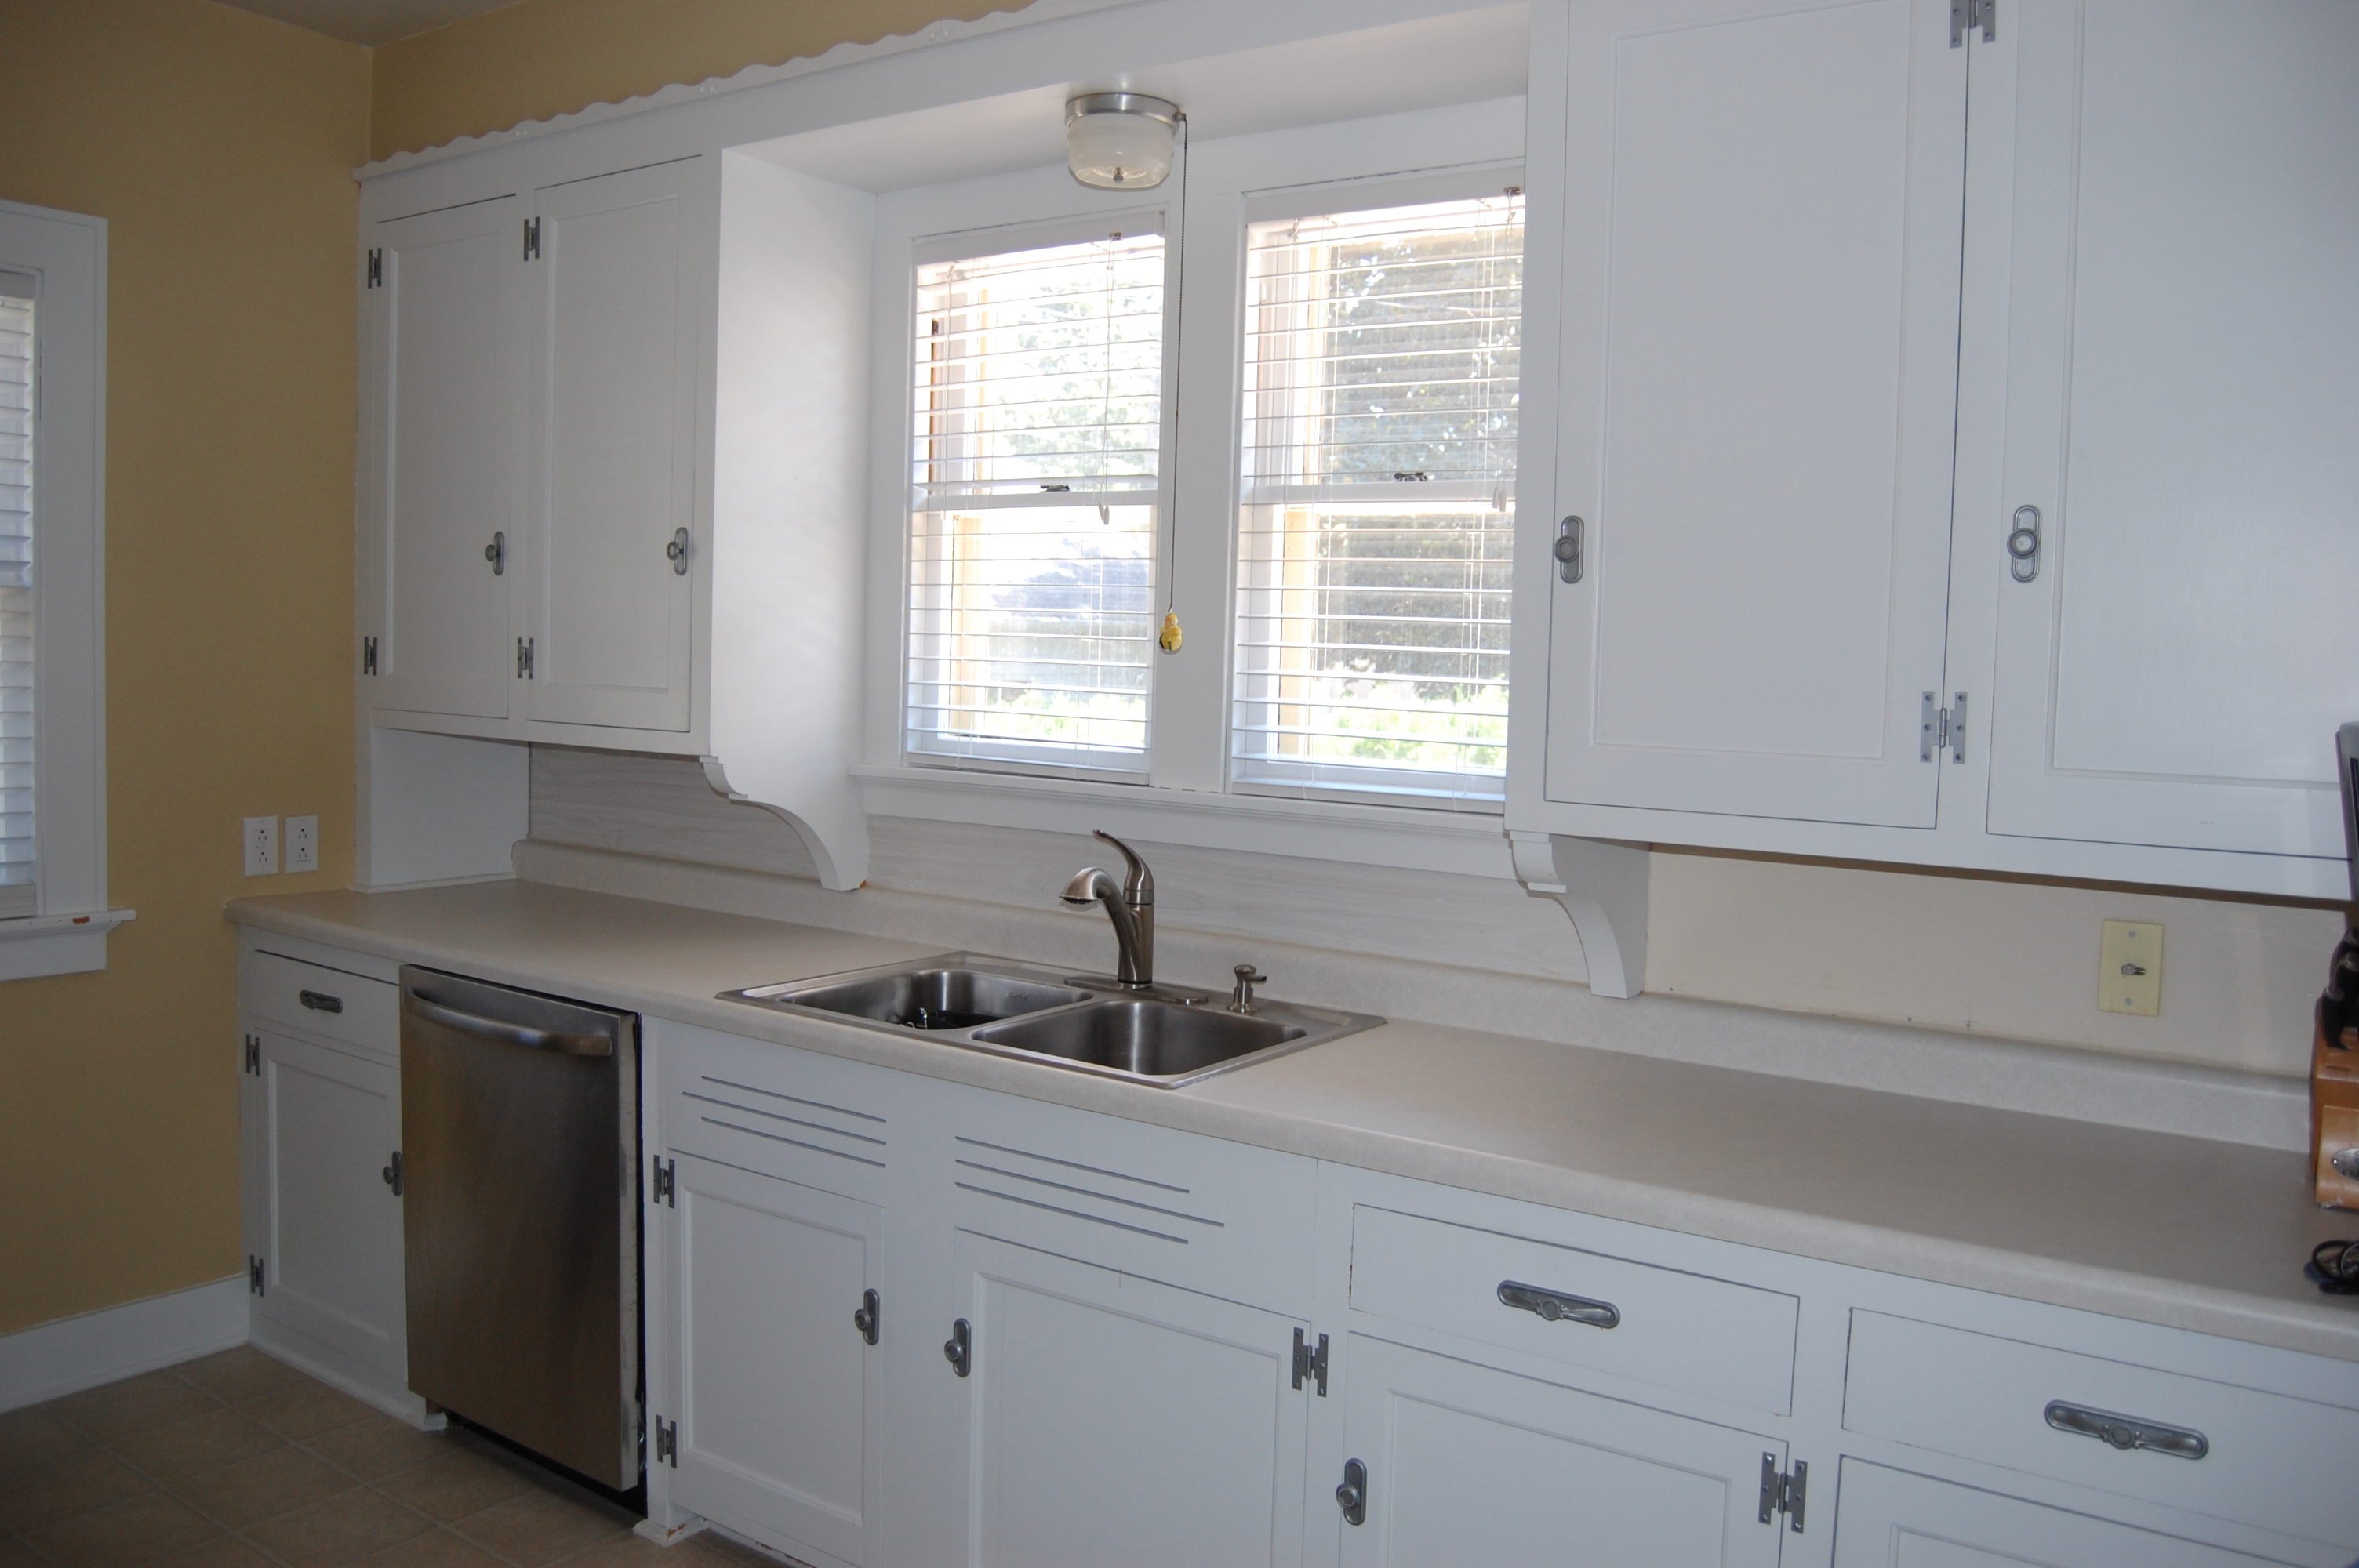 How To Painting Kitchen Cabinets - Which paint to use for kitchen cabinets